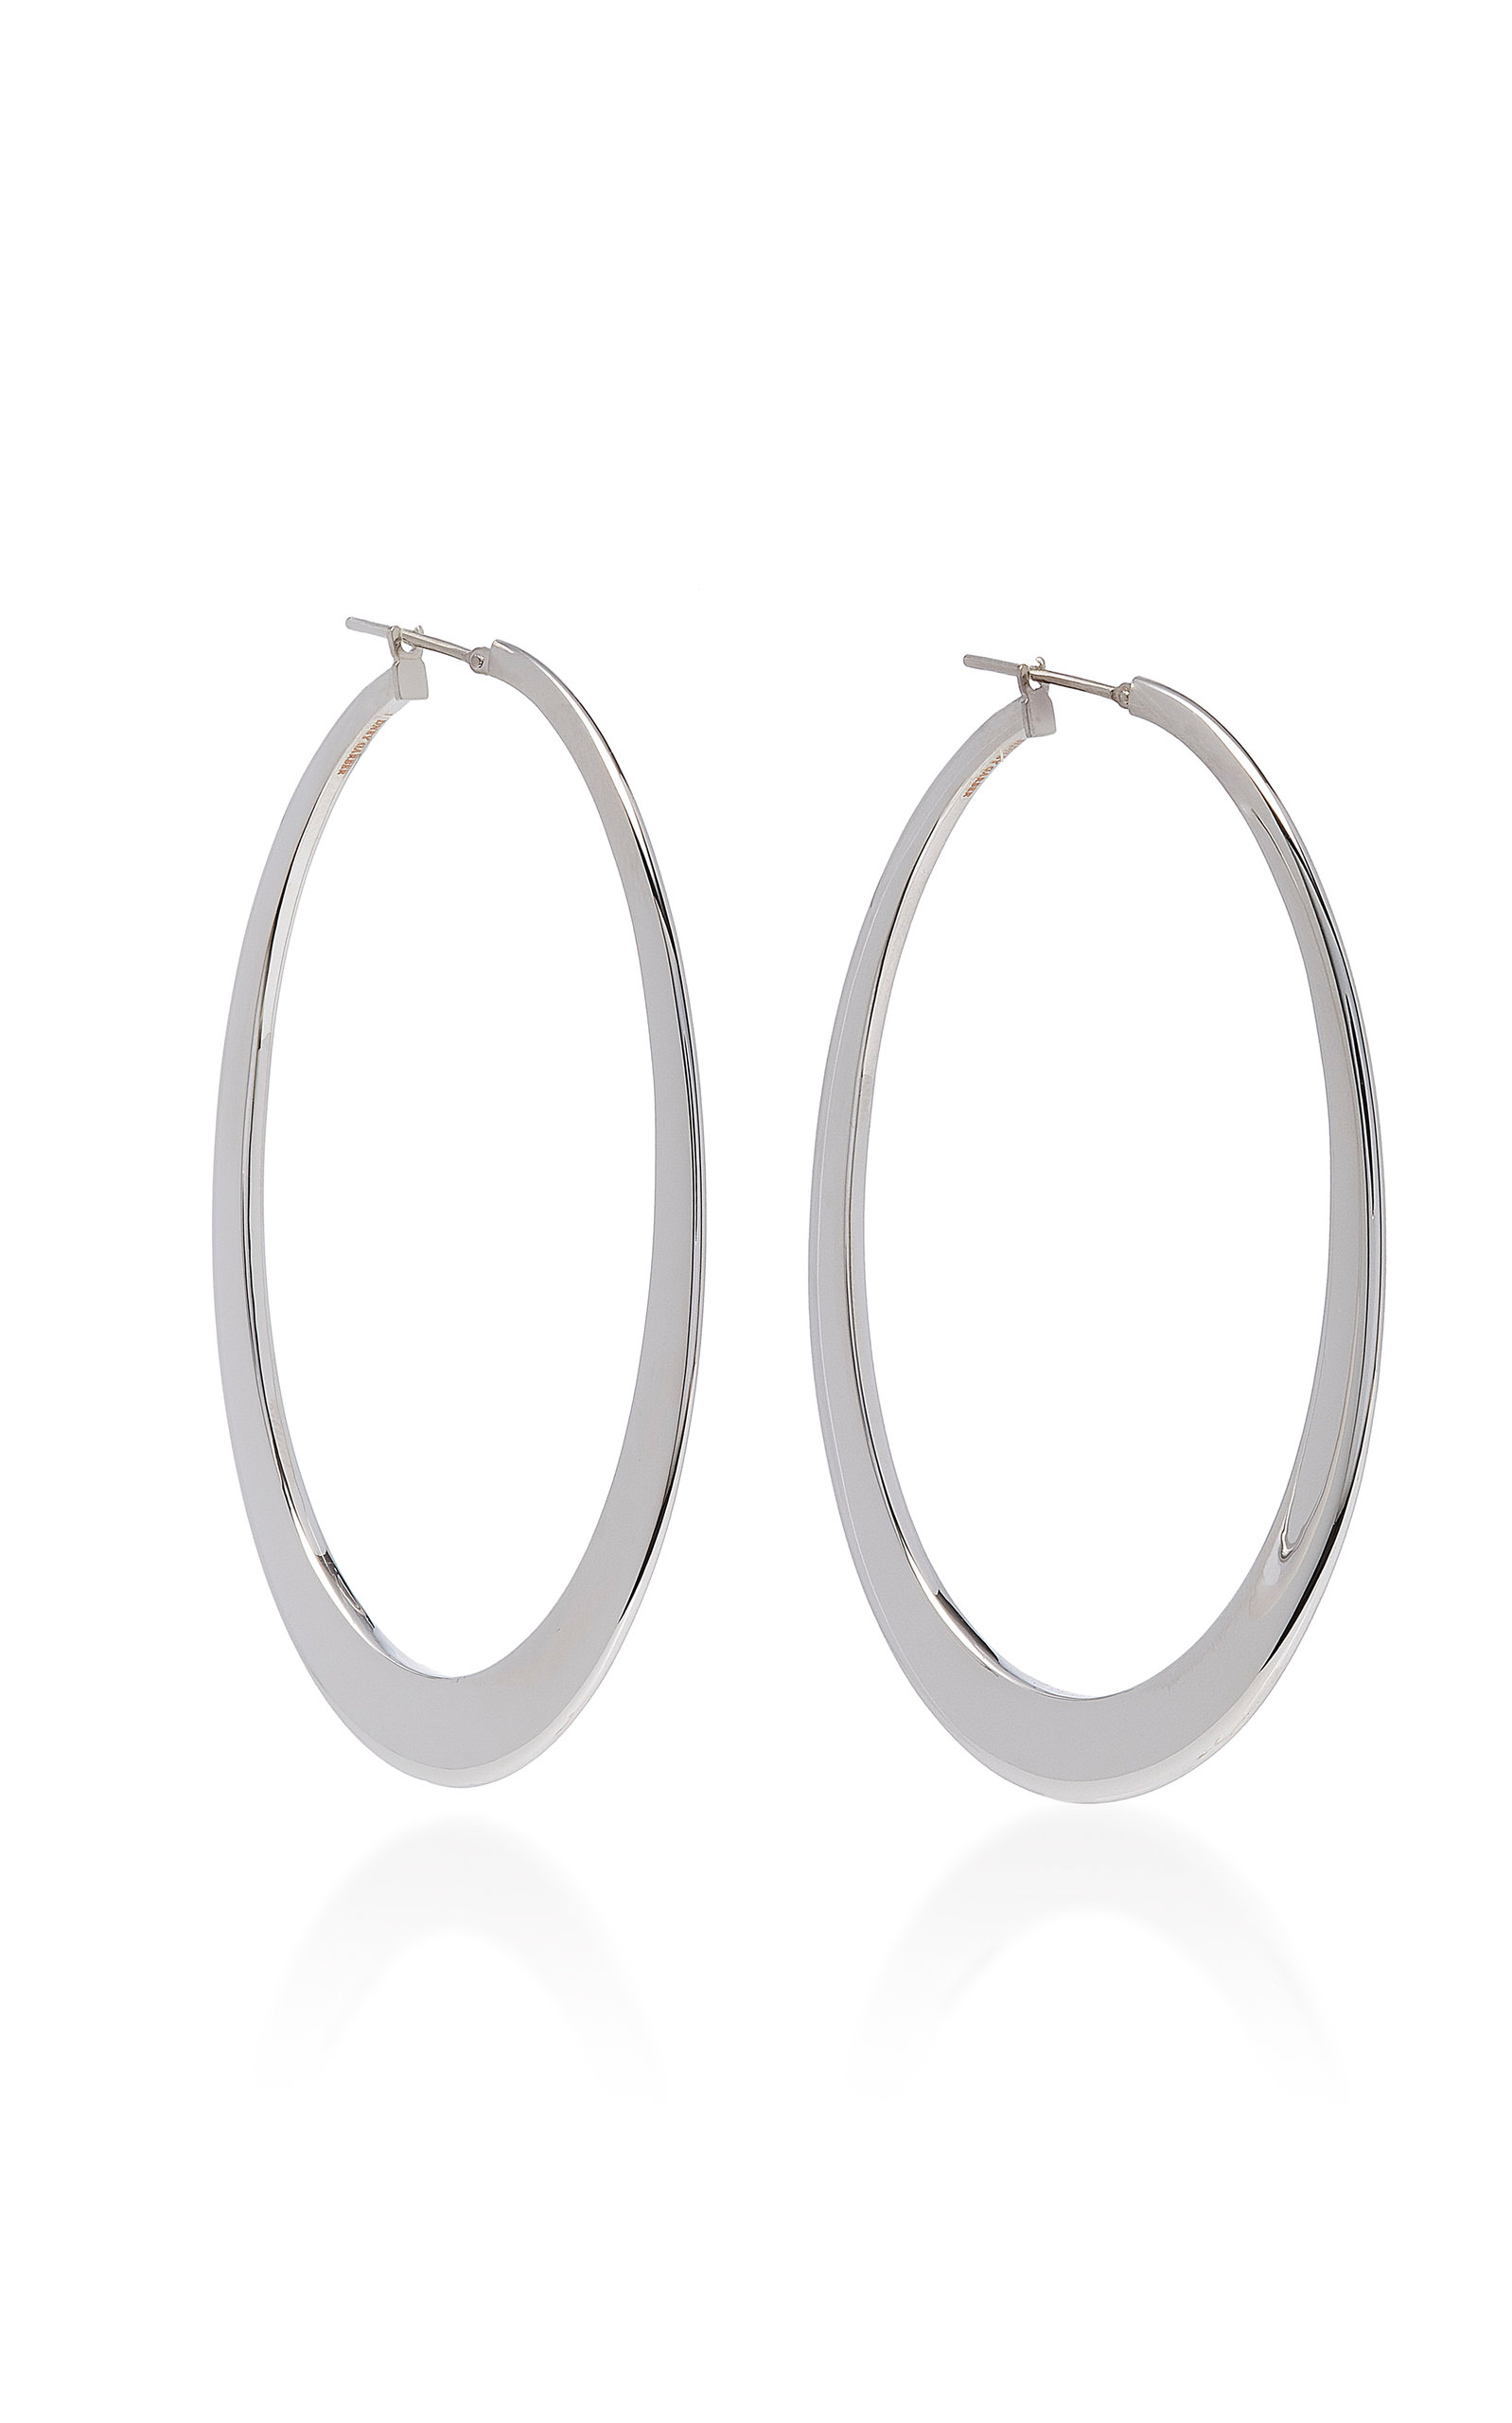 oval fine jewelry earrings in white tara gold hoop